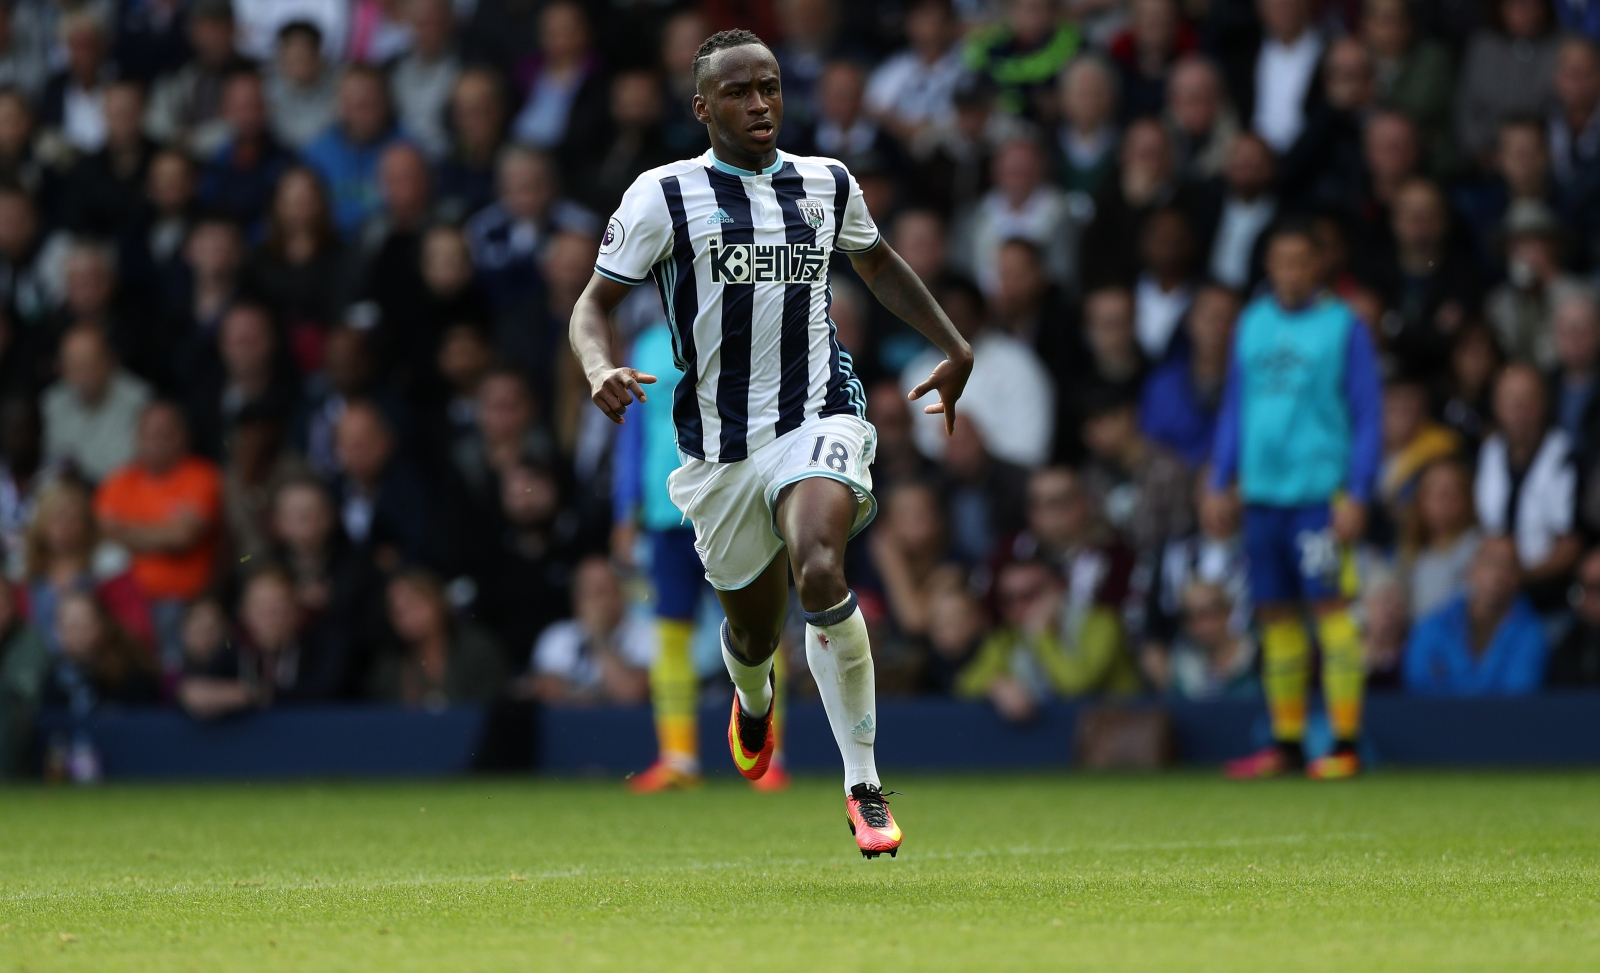 Saido Berahino; Stoke manager Mark Hughes 'hopeful' of signing striker